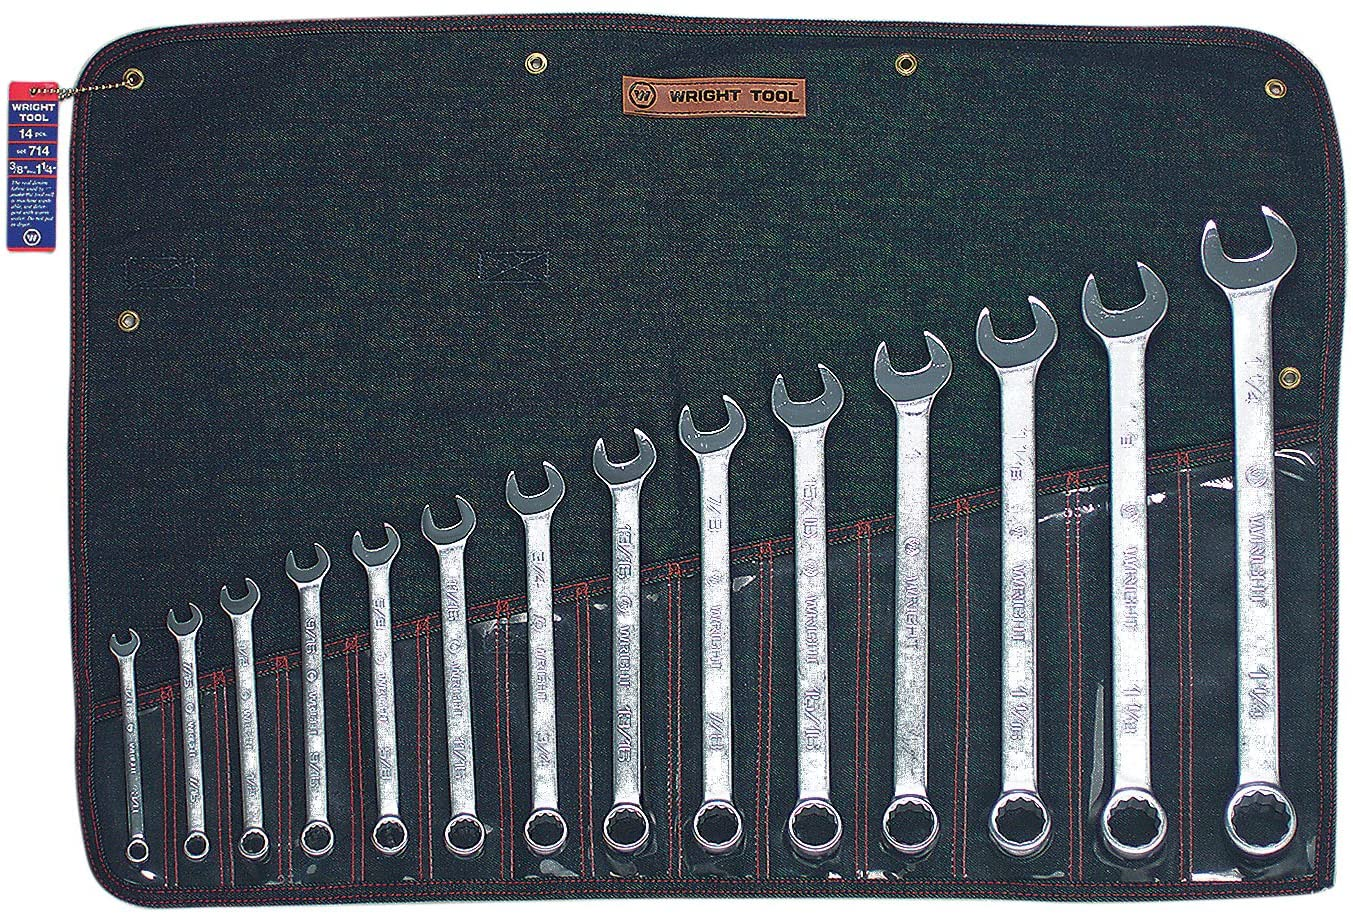 SET 714 14PC COMB WRENCH SET 14 Pc. Combination Wrench Set